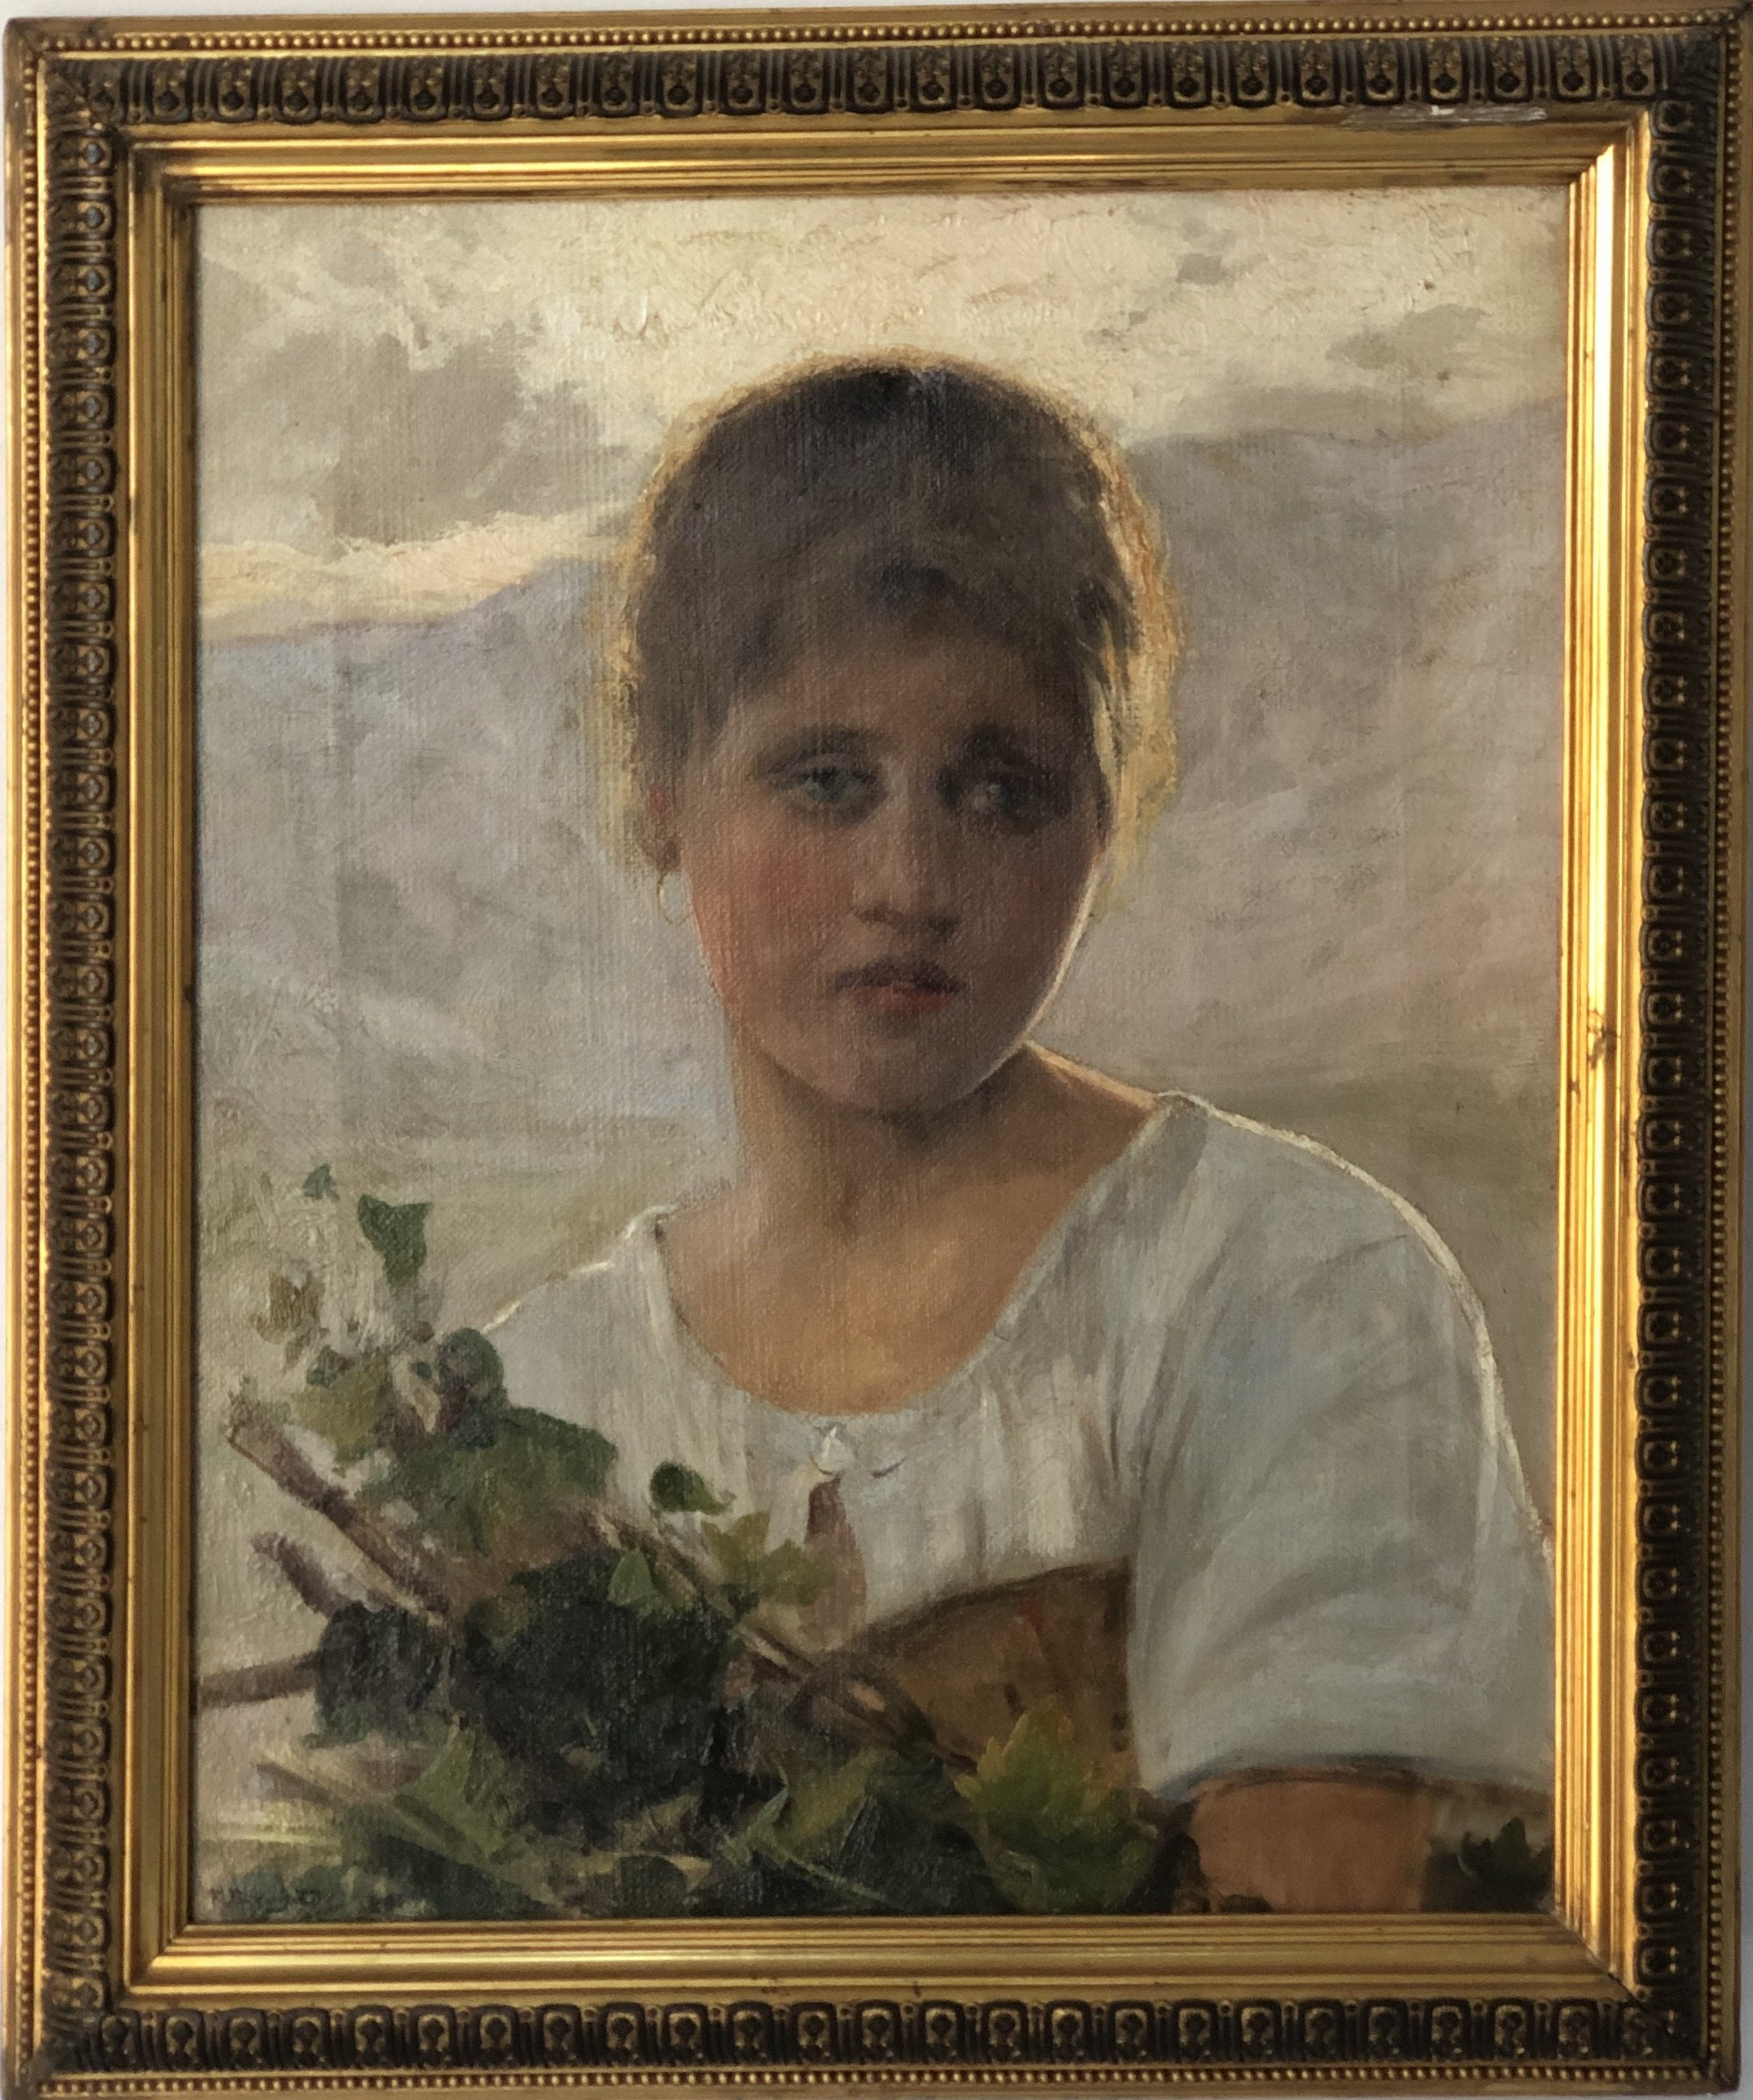 Girl with bouquet of flowers. 1890. Oil on canvas